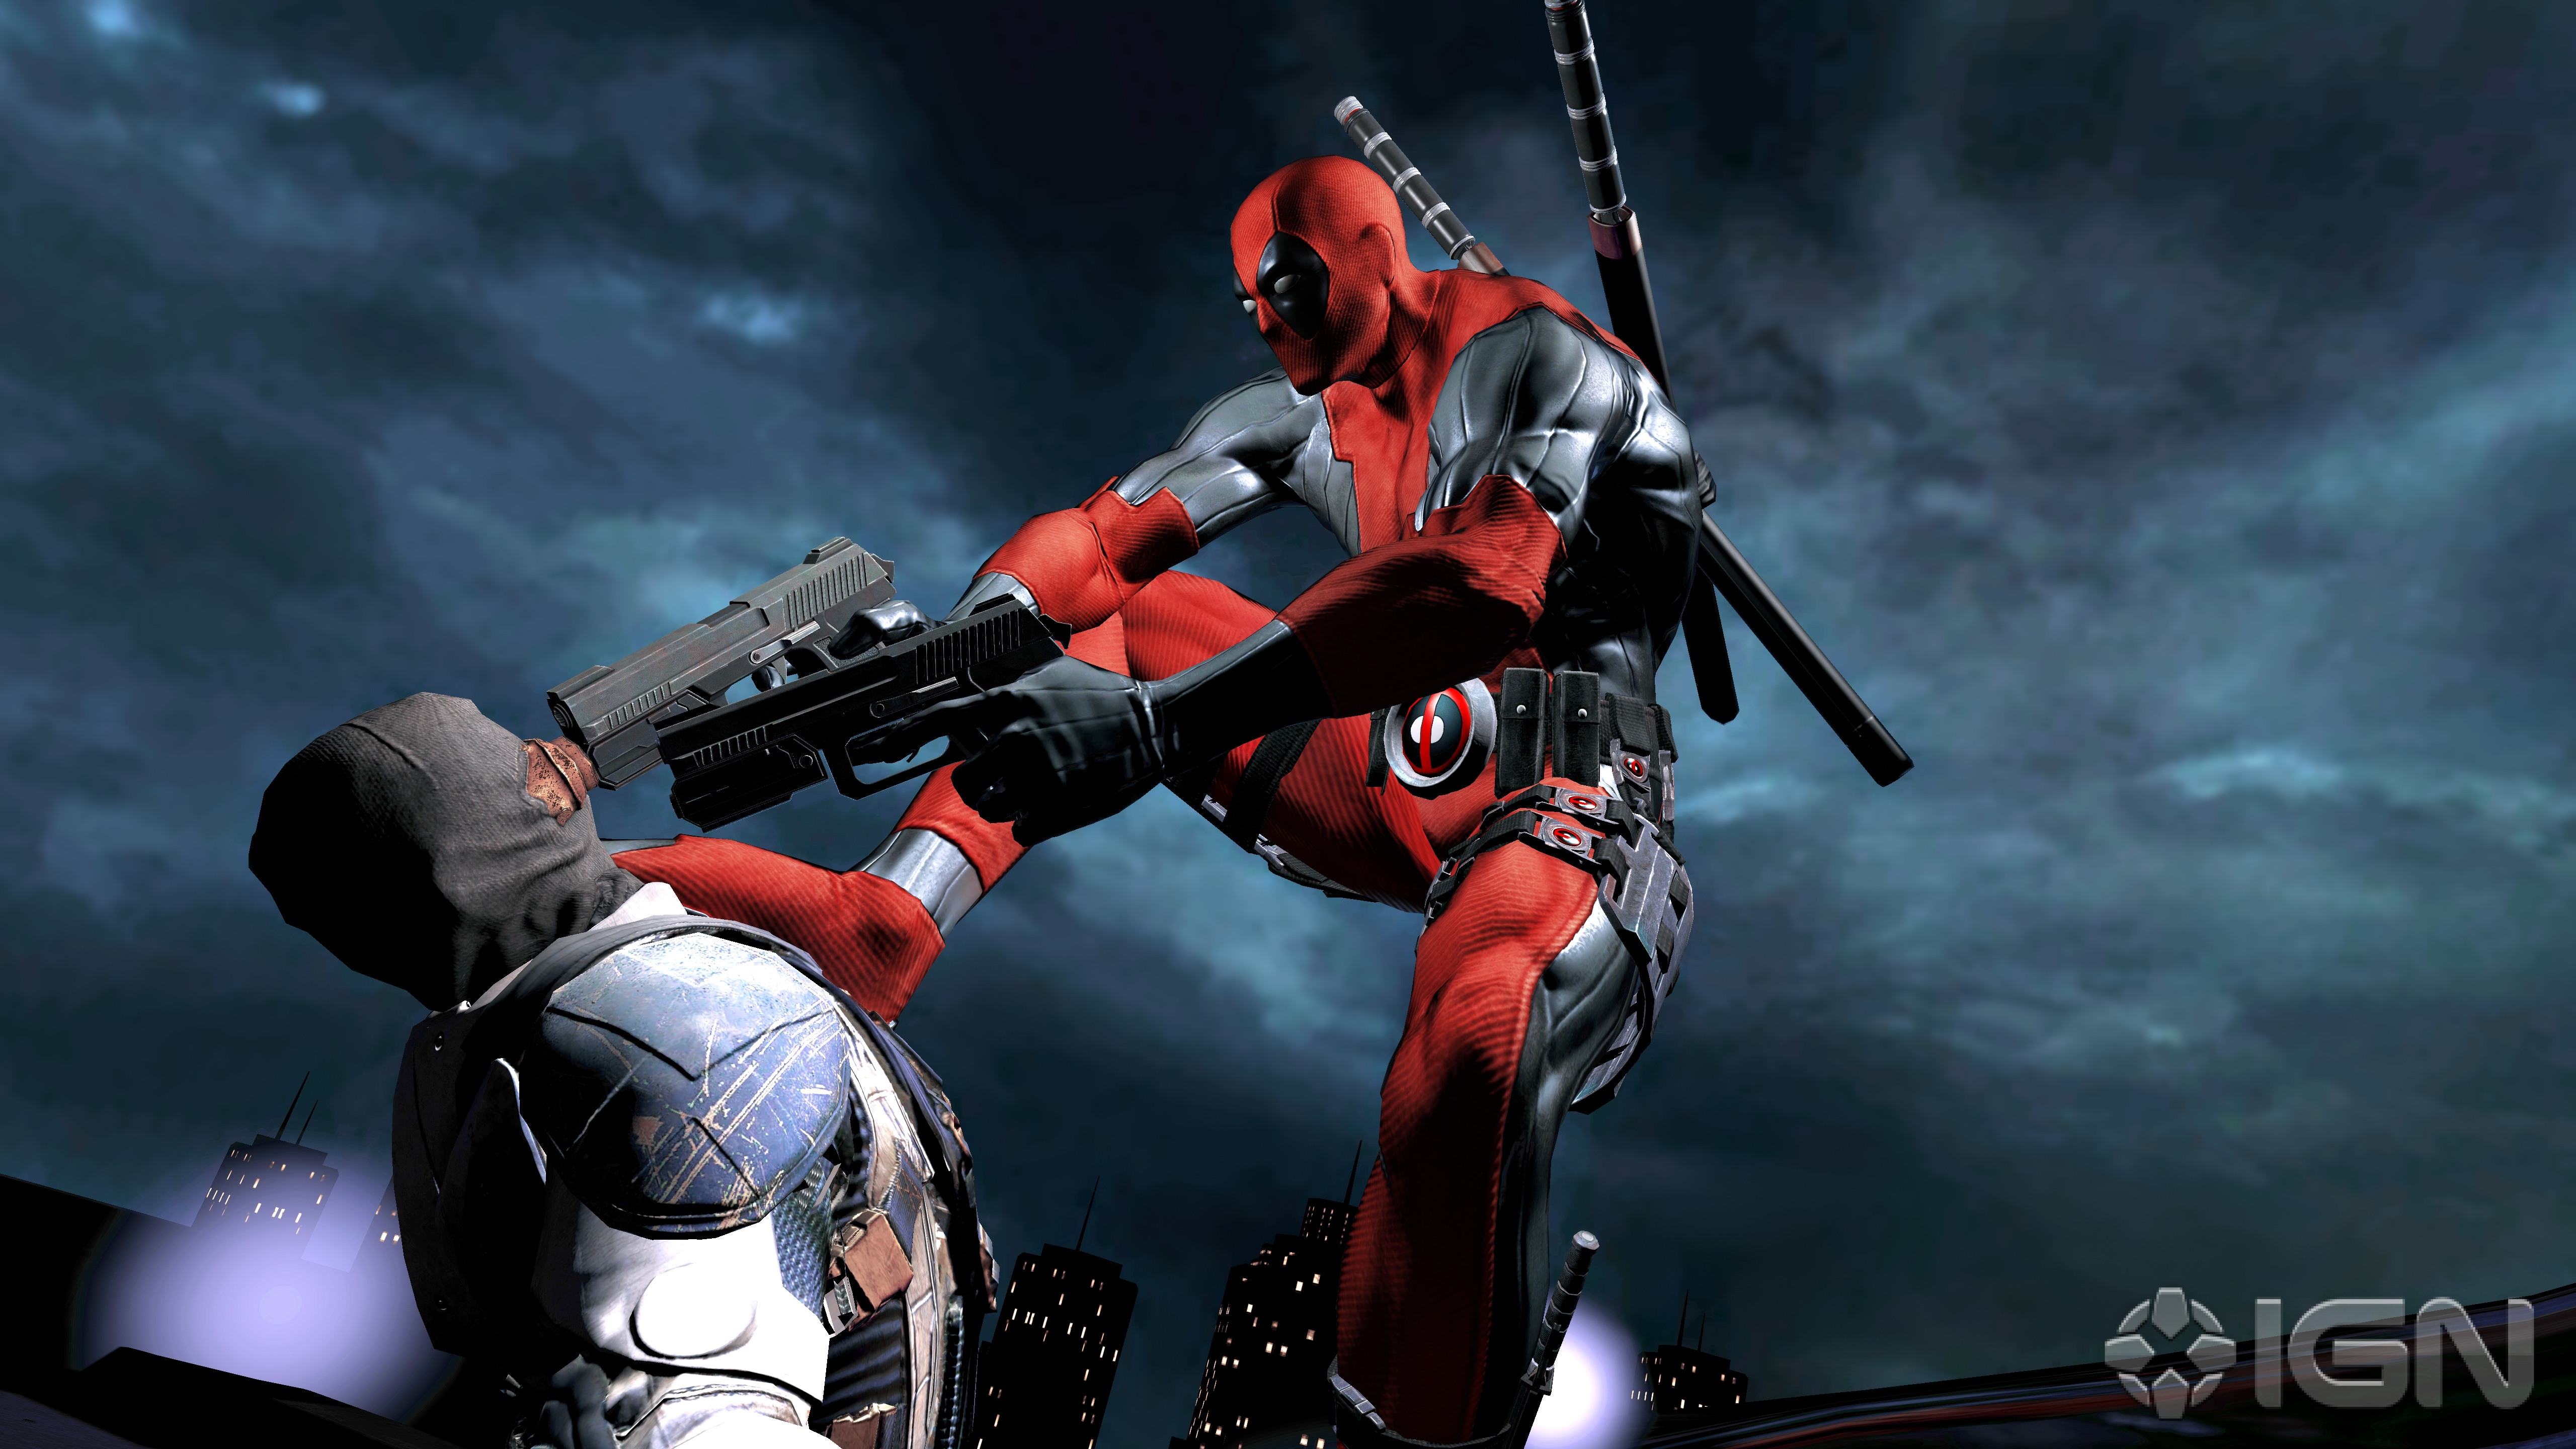 deadpoolgamescomtwo are better than one 1jpg 9d820ejpg 5120x2880